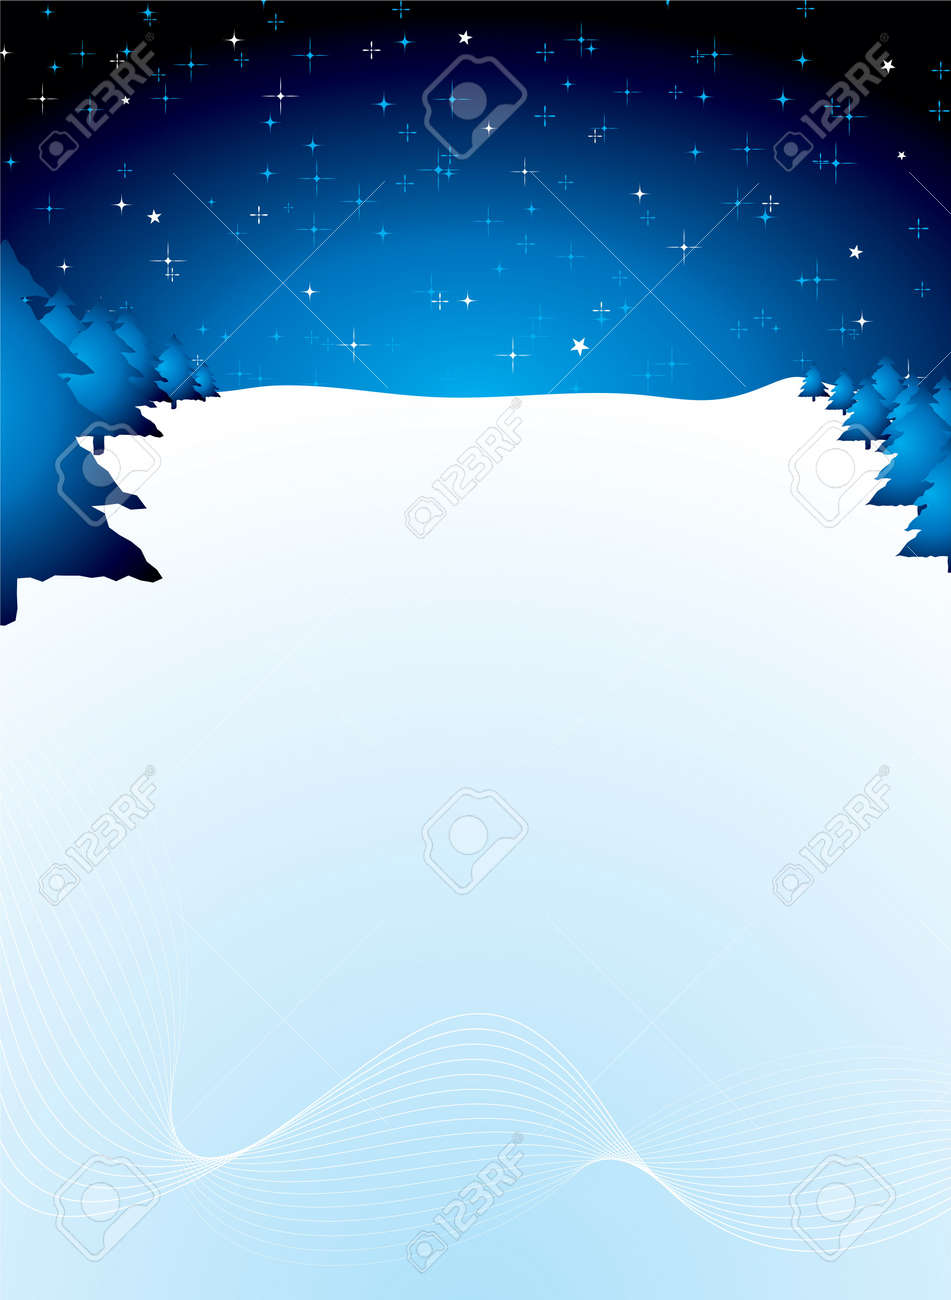 xmas background scene in blue with copy space and snow drifts Stock Photo - 2104543